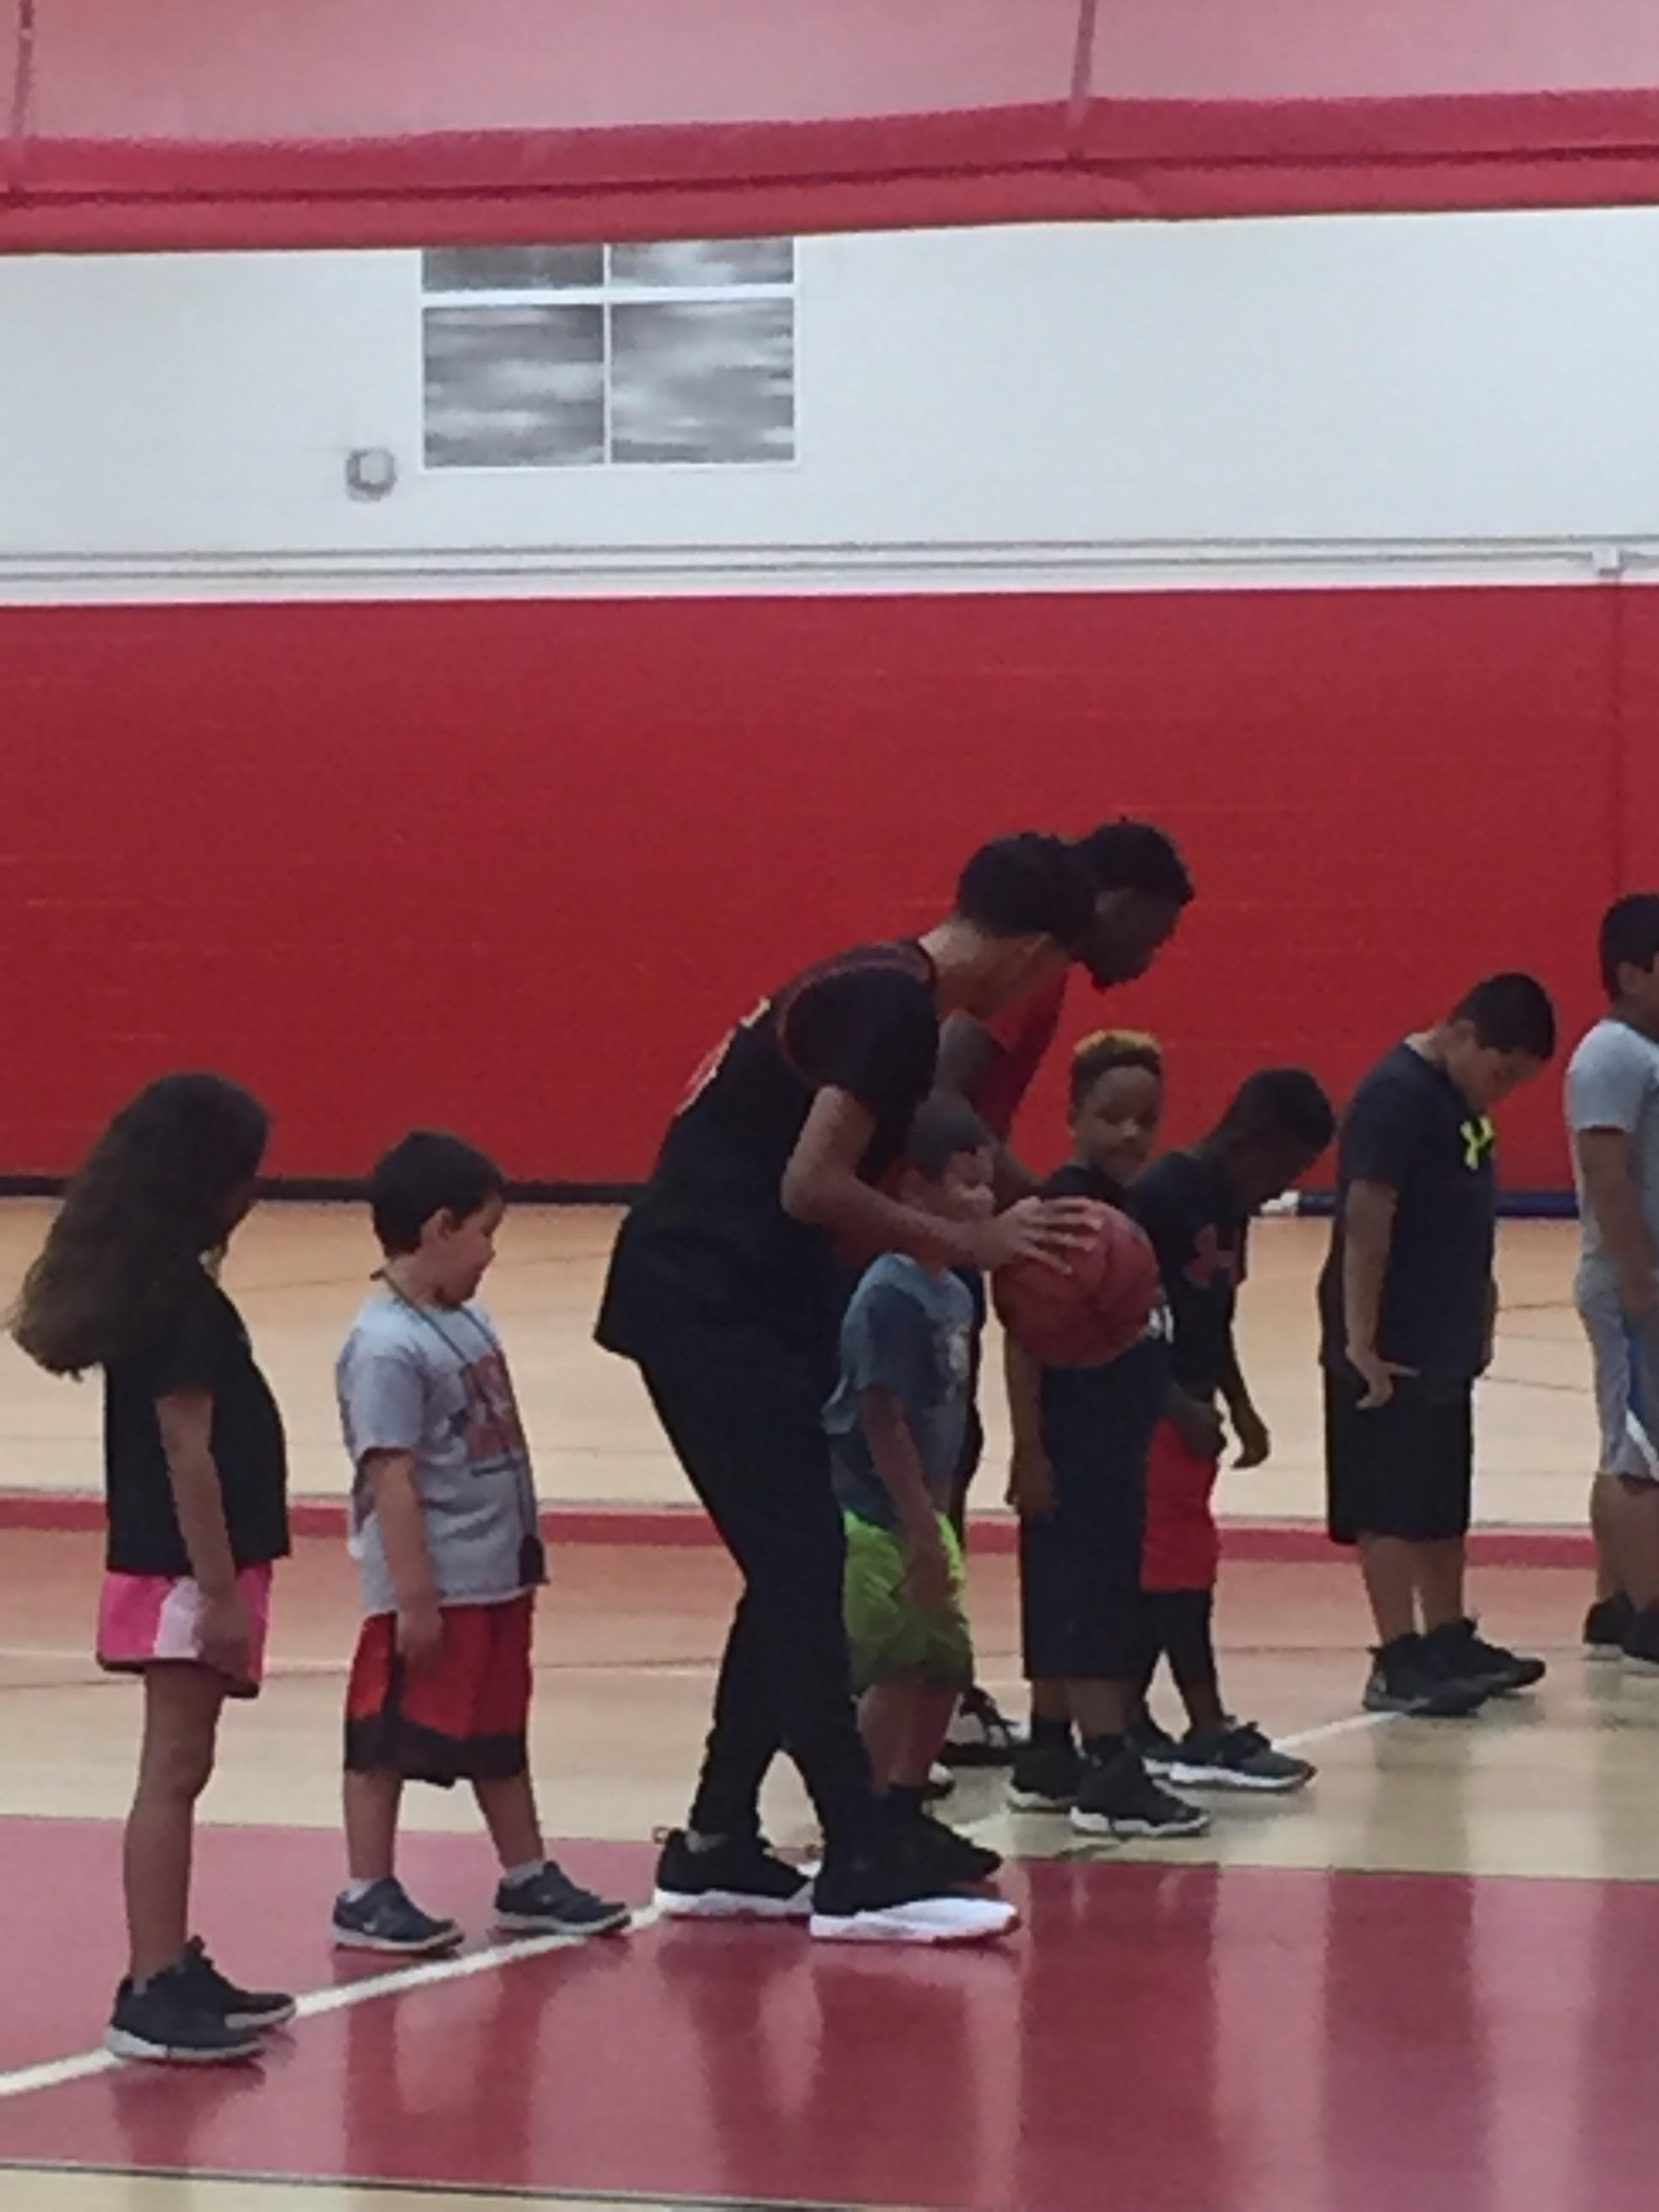 Young kids learning to play basketball